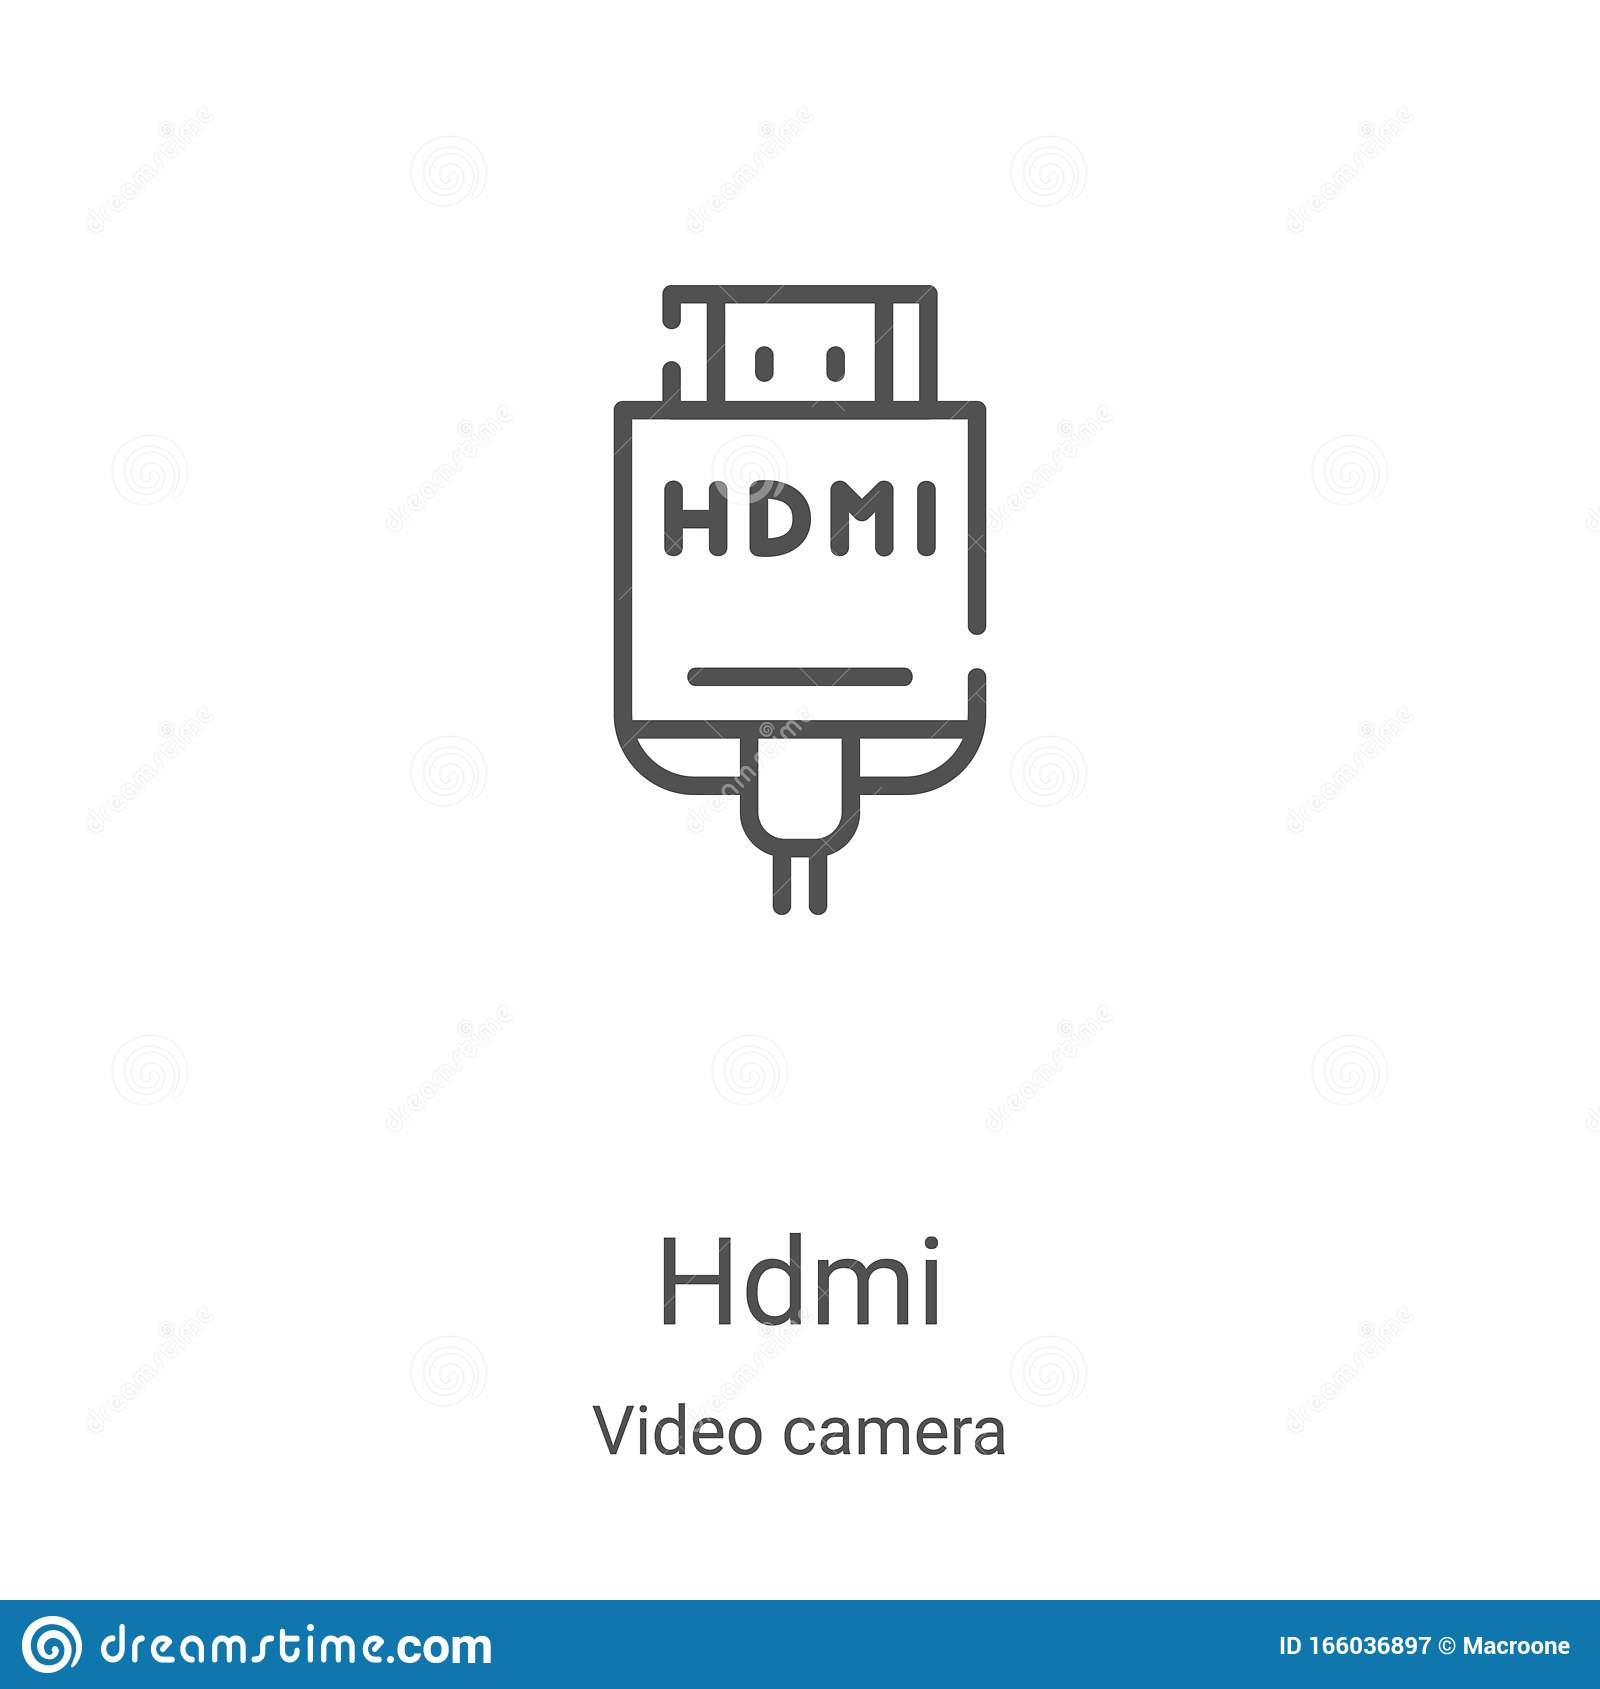 hdmi icon stock illustrations 1 461 hdmi icon stock illustrations vectors clipart dreamstime https www dreamstime com hdmi icon vector video camera collection thin line outline illustration linear symbol use web mobile apps logo image166036897